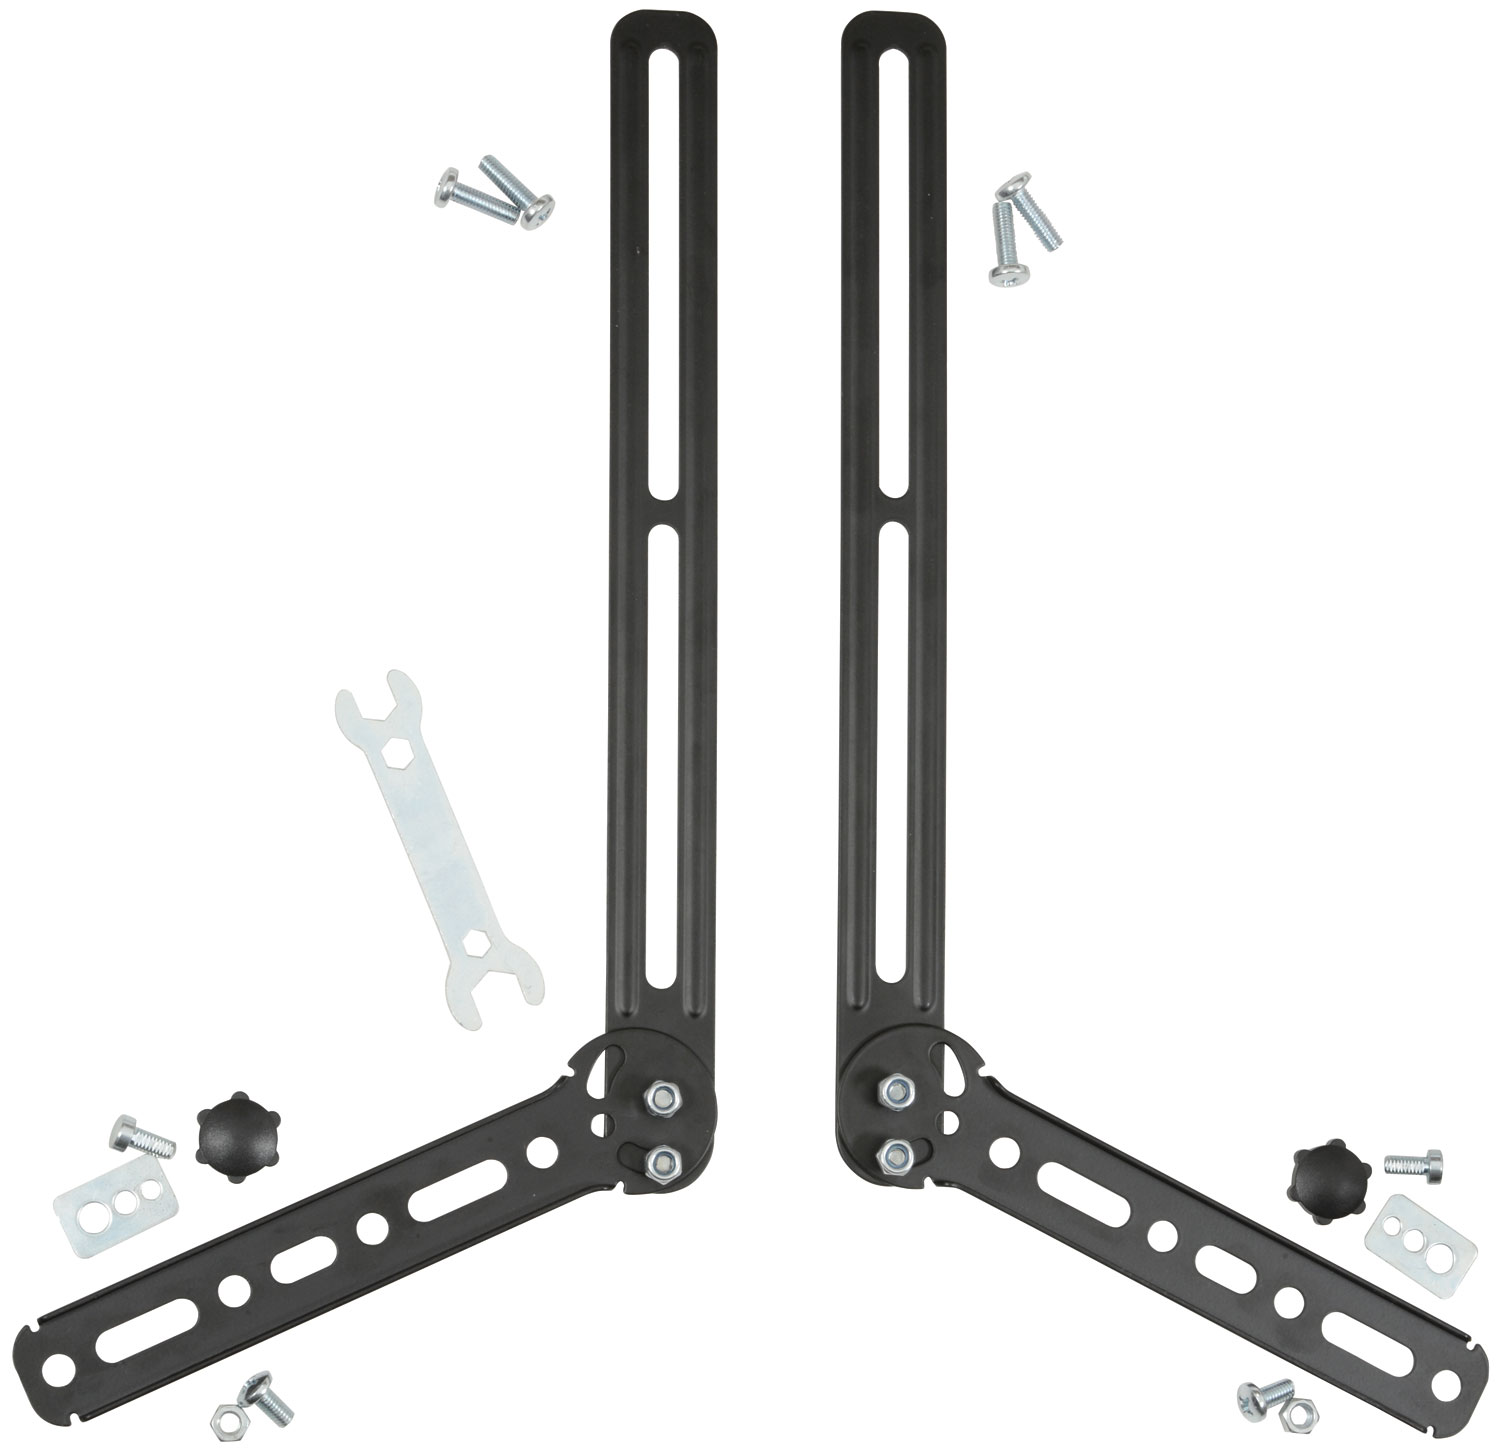 avlink L-Shaped Sound Bar Brackets